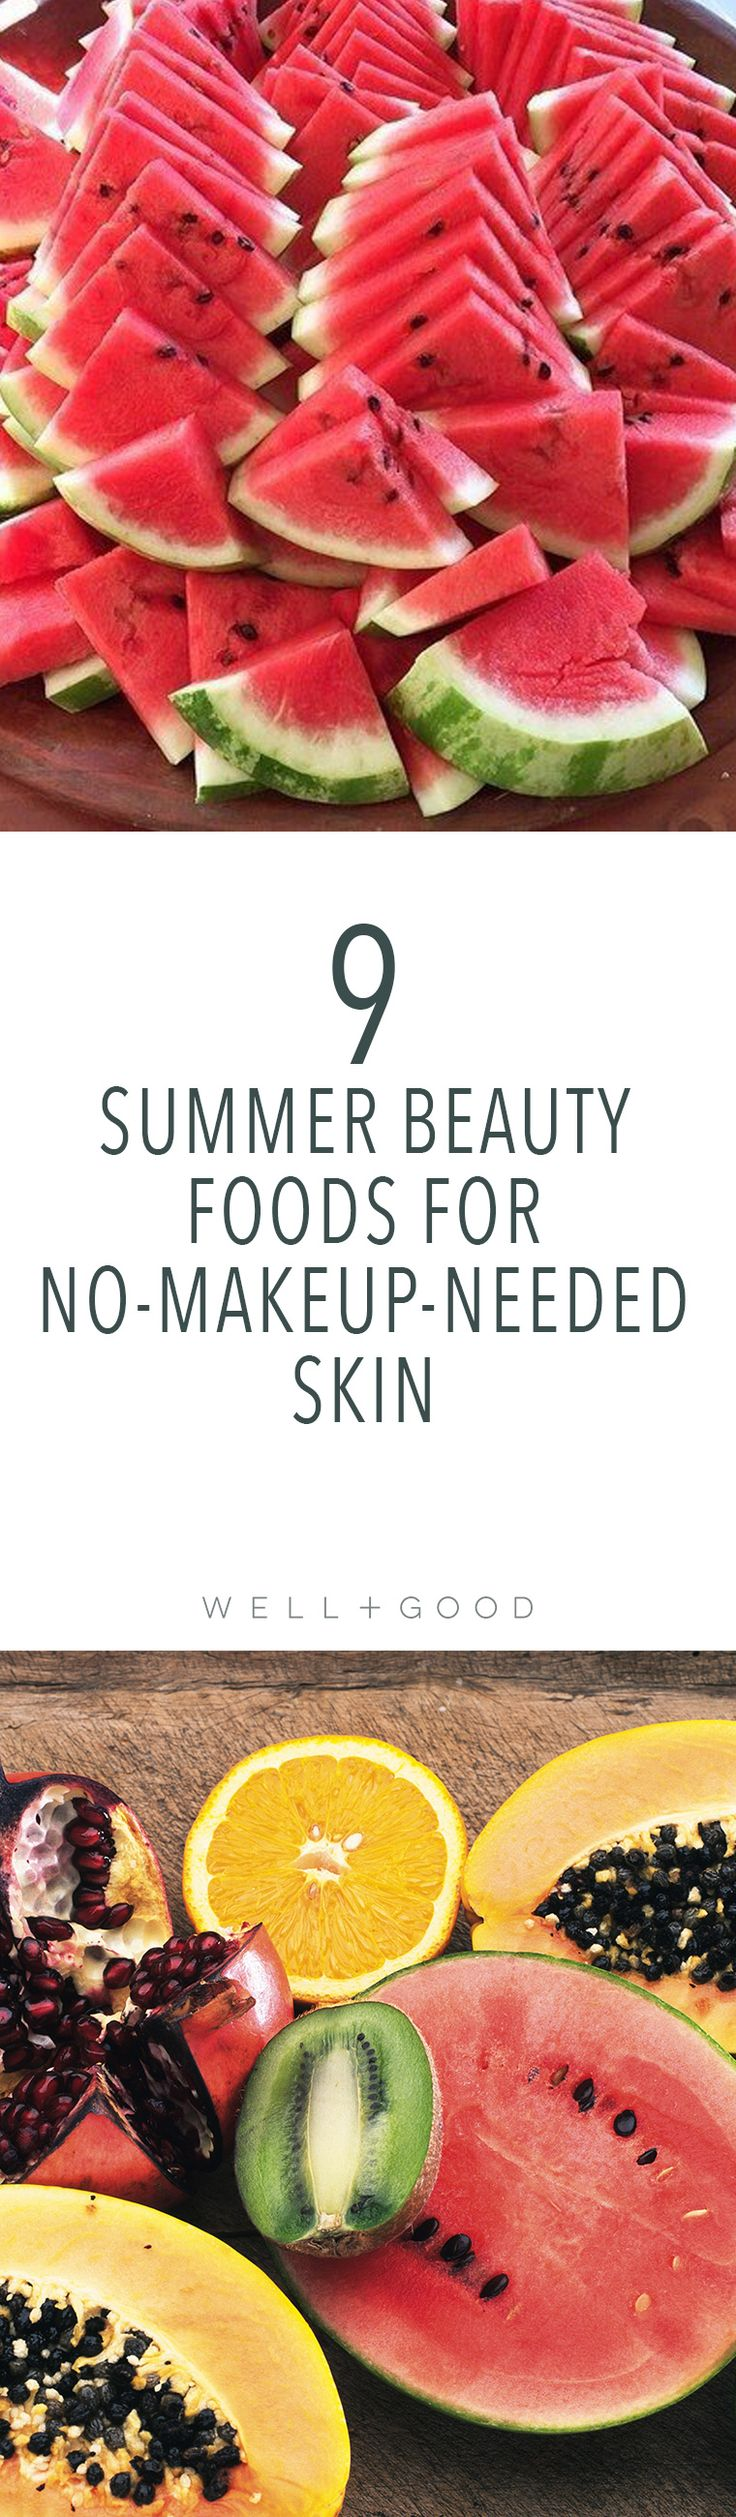 Foods to eat in the summer for glowing skin